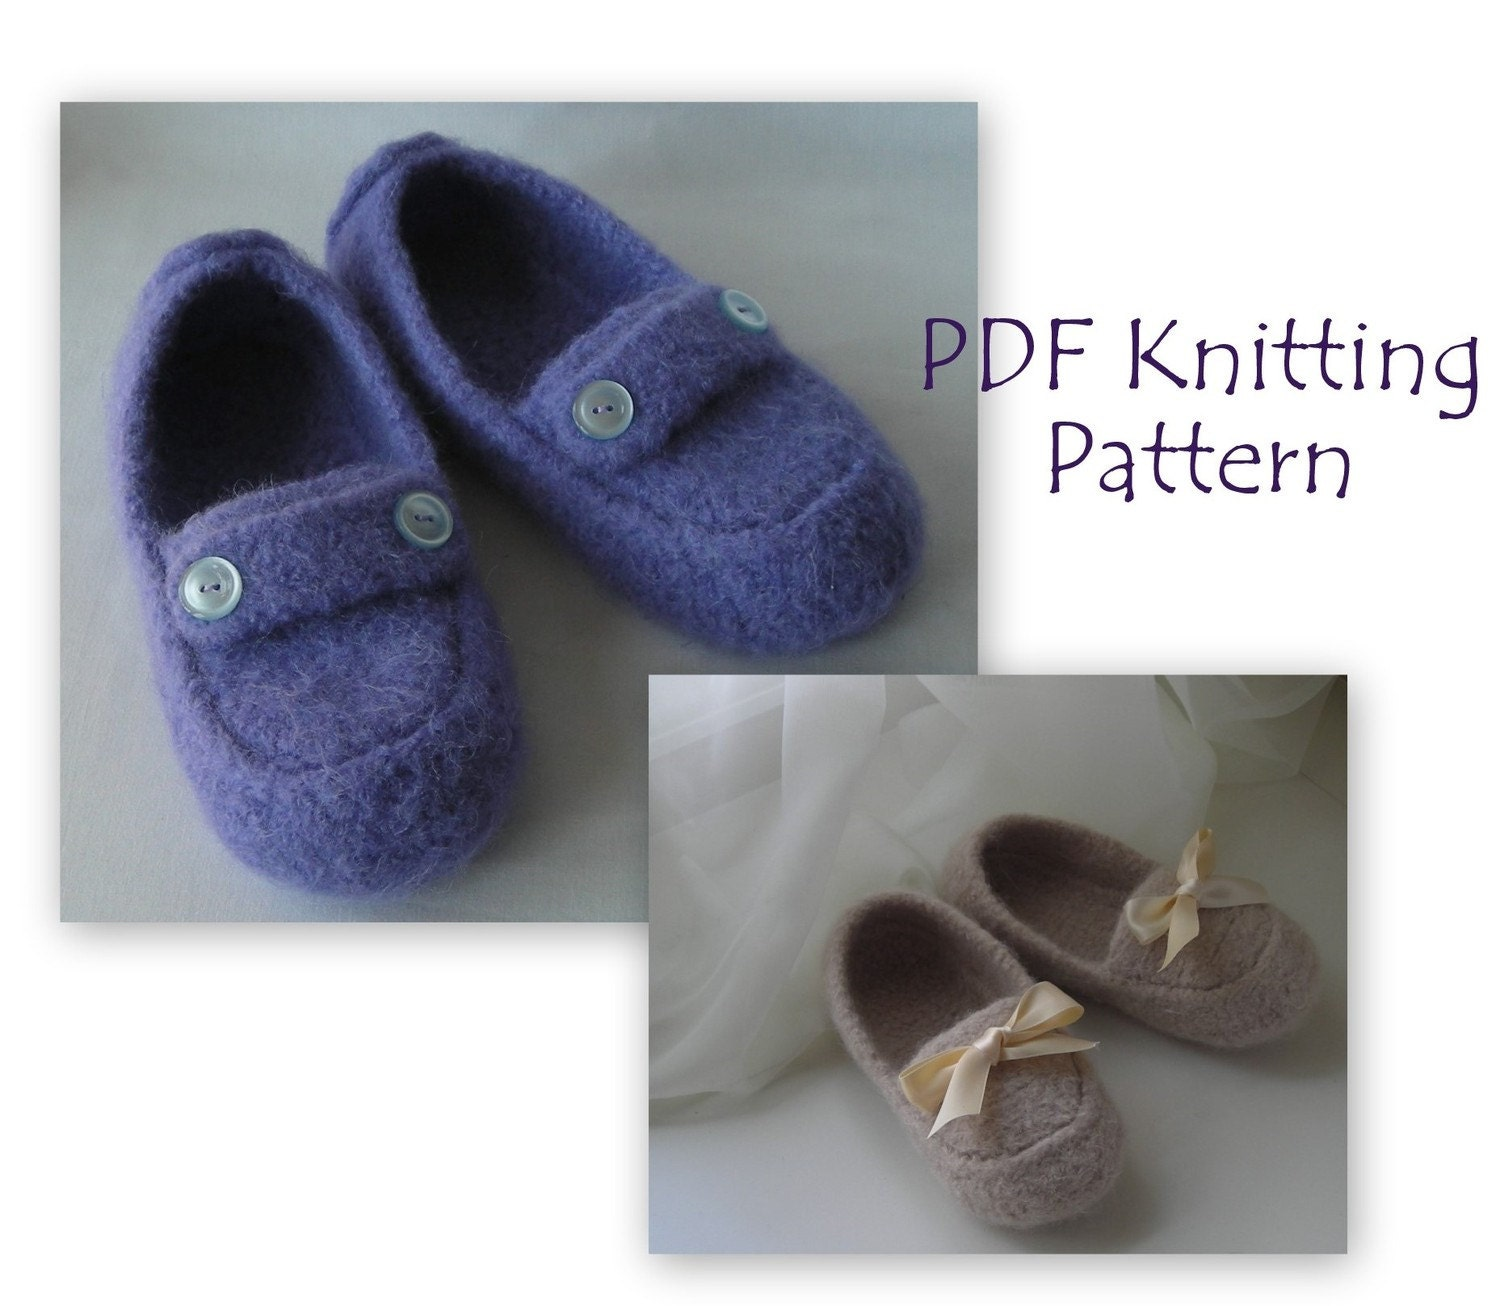 MAN CROCHET SLIPPER PATTERN « CROCHET FREE PATTERNS